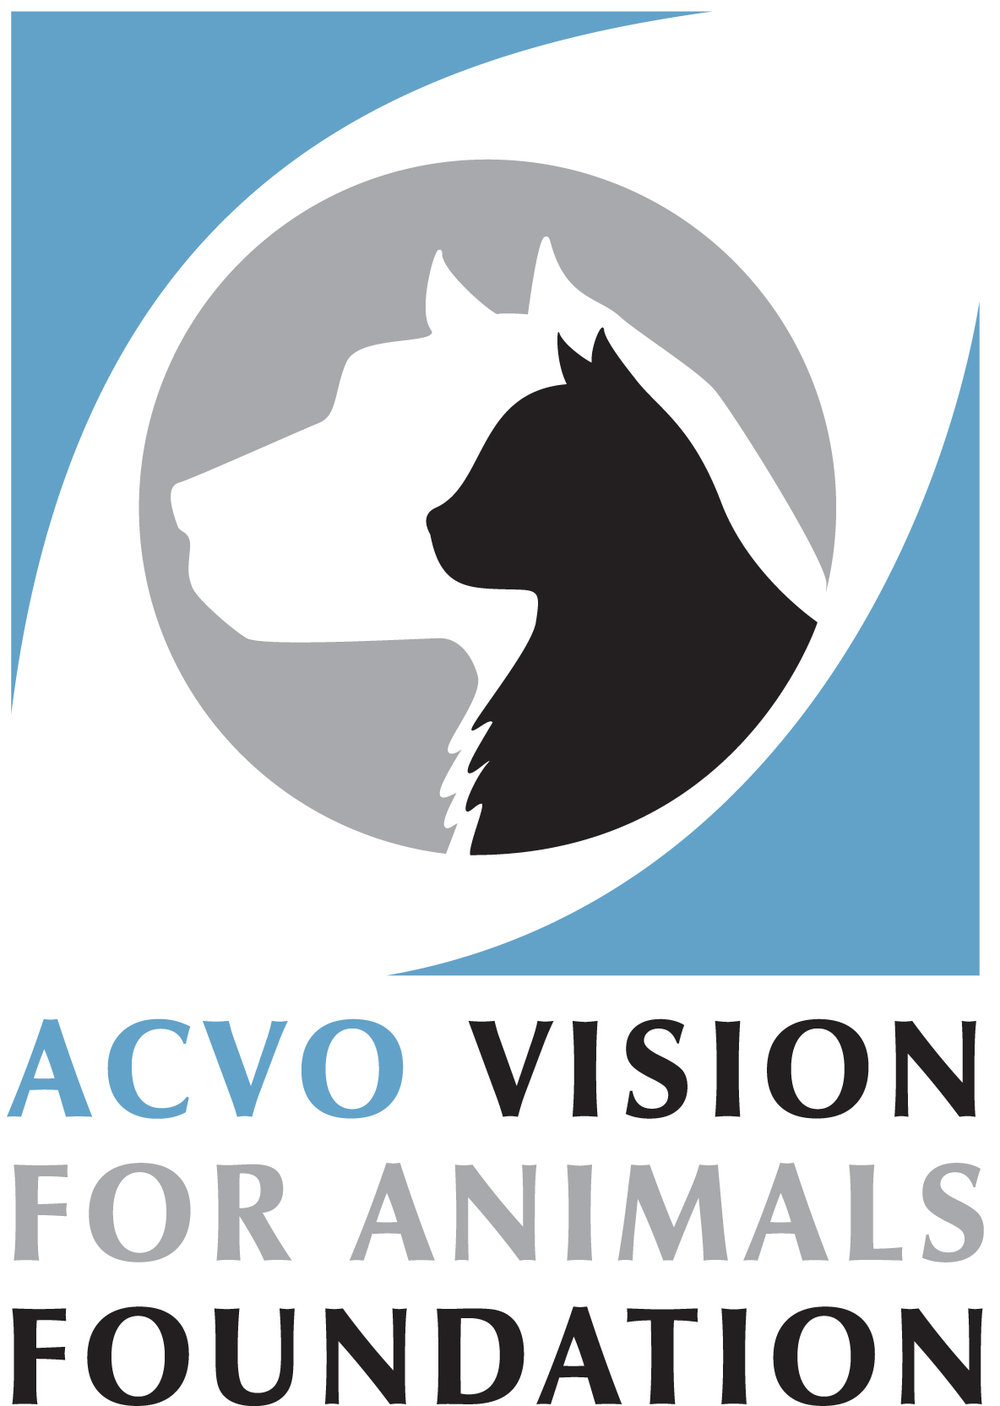 ACVO Vision for Animals Foundation - ACVO's Foundation arm. A Separate non-profit that seeks to,